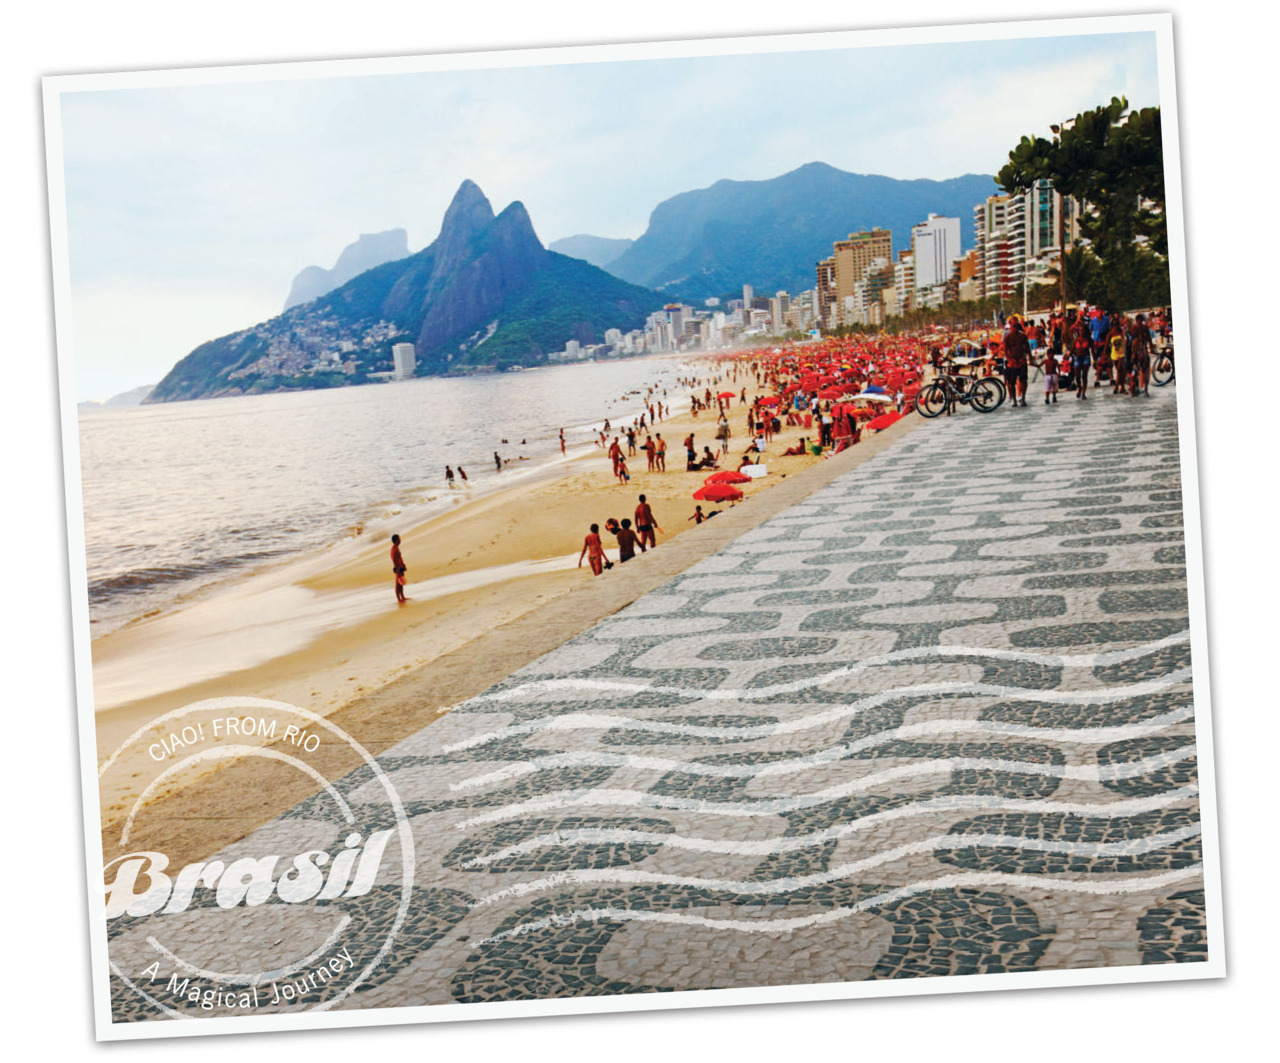 "Olá From Rio de Janeiro!  Population: 12 million +Average temp: 75 °FOfficial song: Cidade Maravilhosa (Marvelous City)Born in Rio? You're officially a ""Carioca""SCORE! The 2014 World Cup will be held in Rio and the 2016 Summer Olympics, too!  It's #1: Rio is the most visited city in the southern hemisphere"